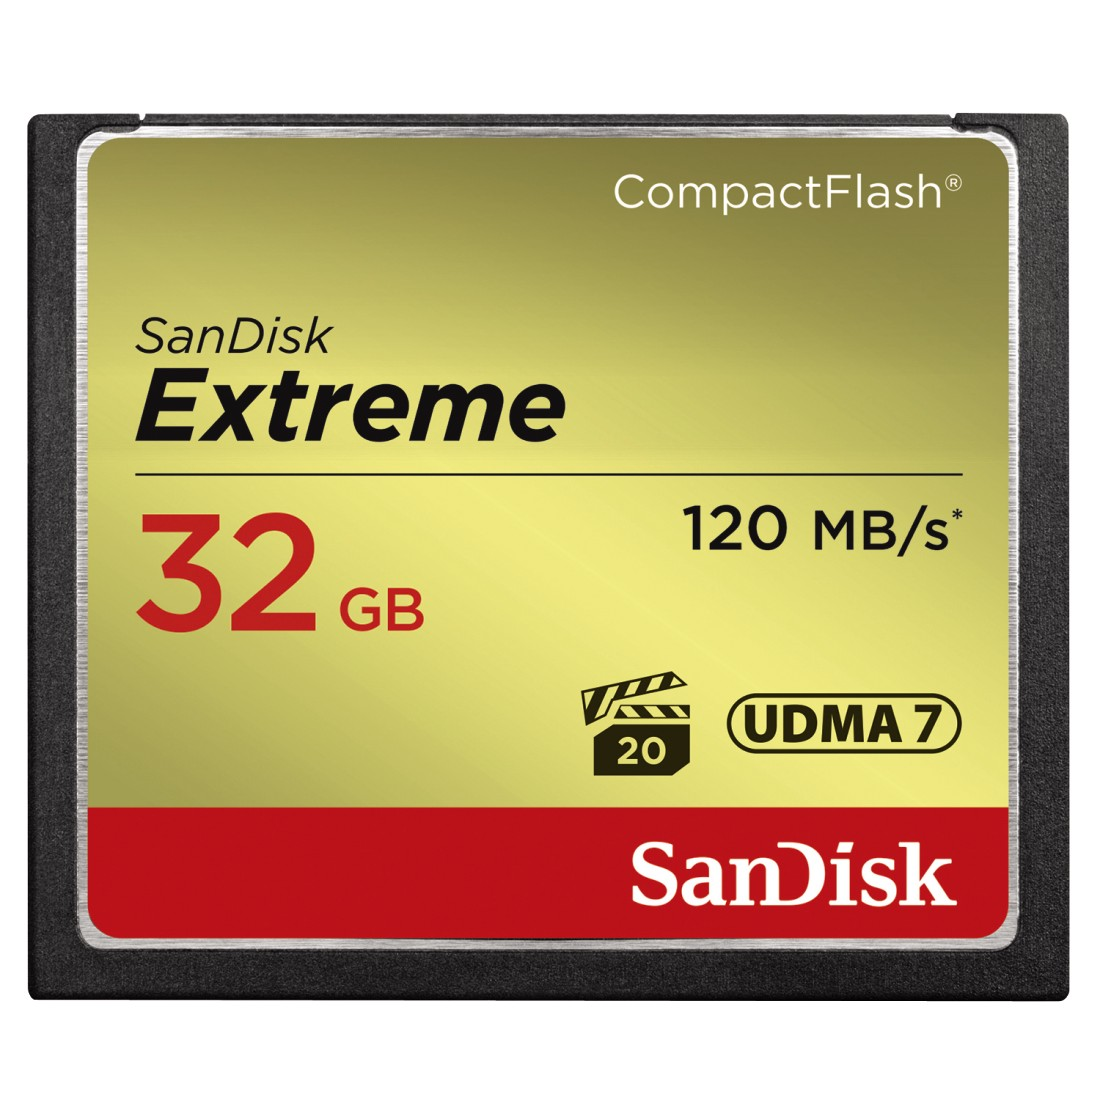 SanDisk Extreme CompactFlash 32GB 120MB/s